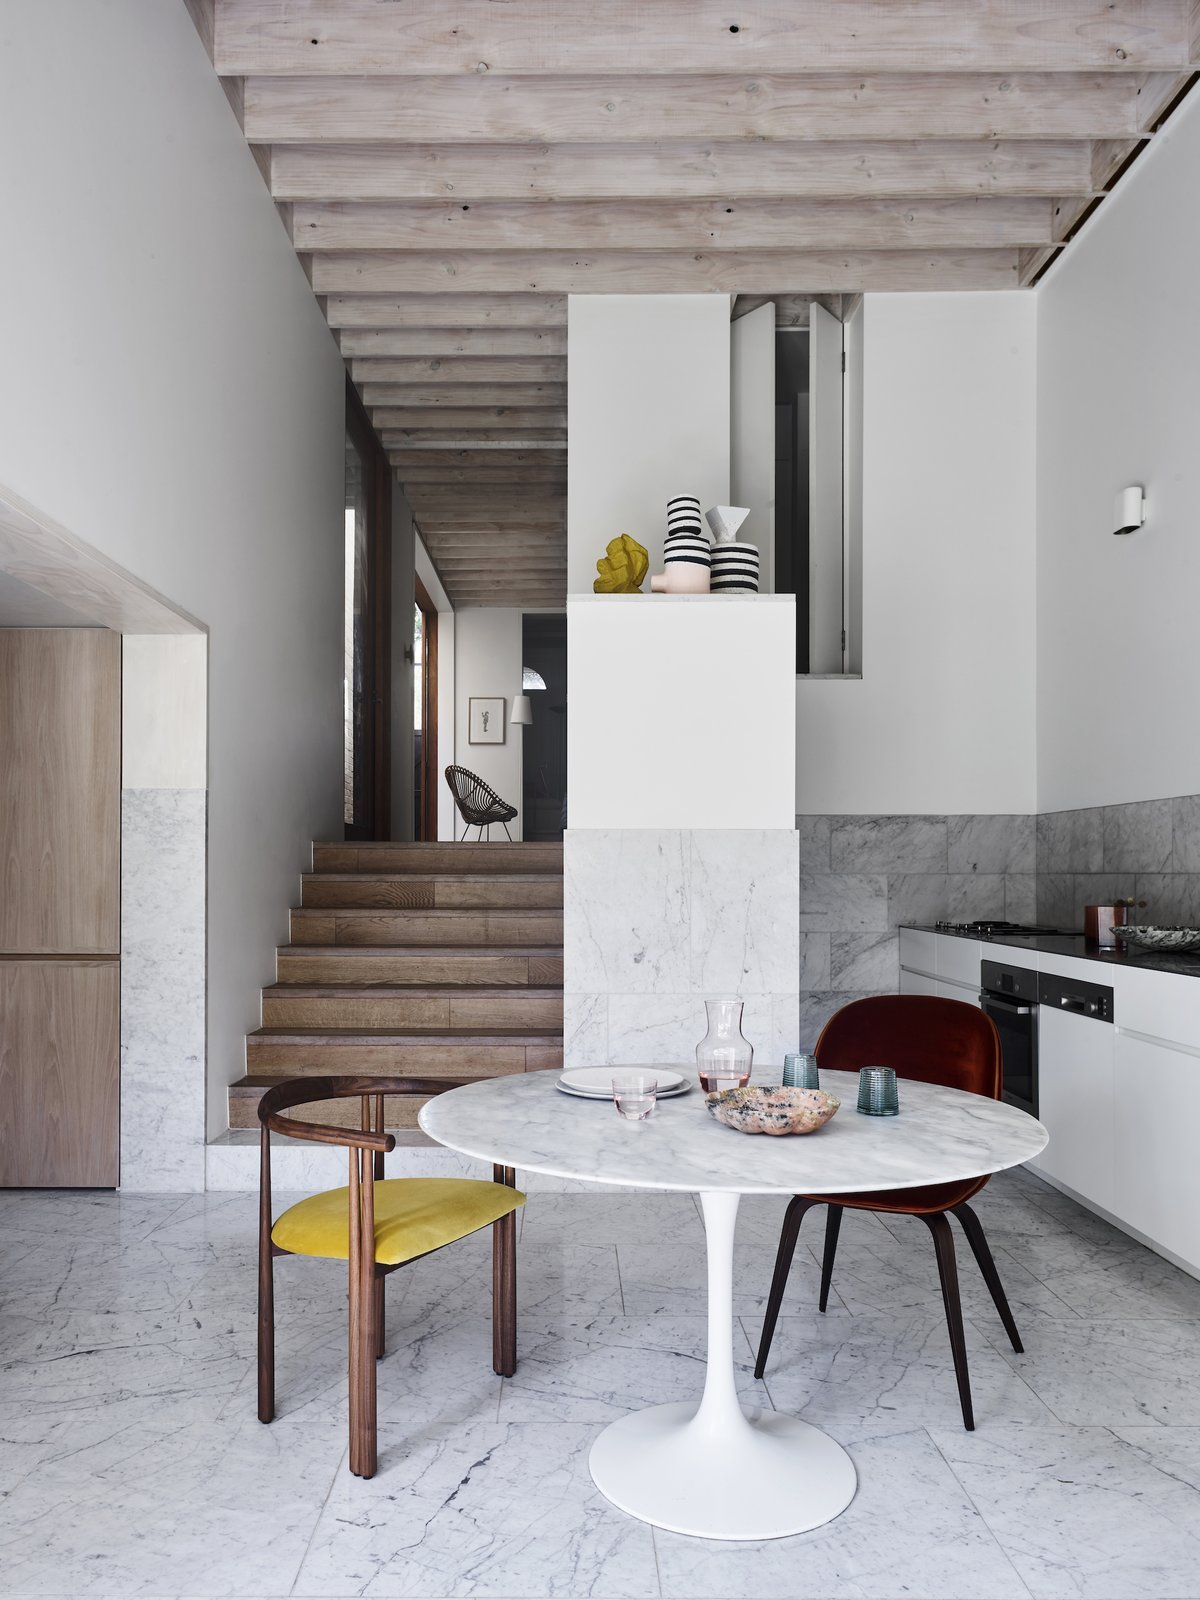 Dining and kitchen at Bondi Junction House by Alexander & CO.